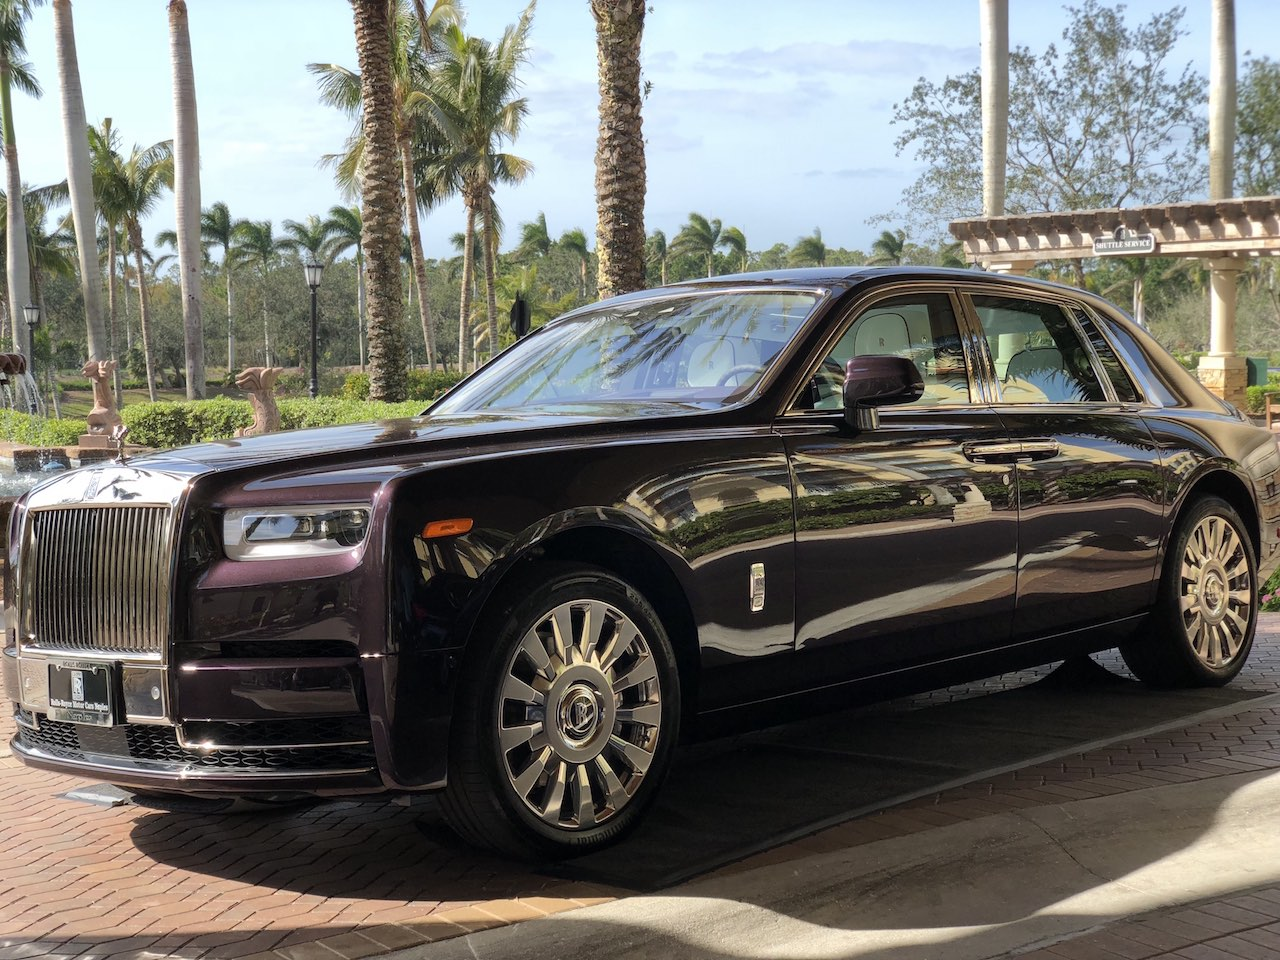 Rolls Royce White >> Rolls-Royce 2018 Phantom Raises $780K For Charity At Naples Winter Wine Festival